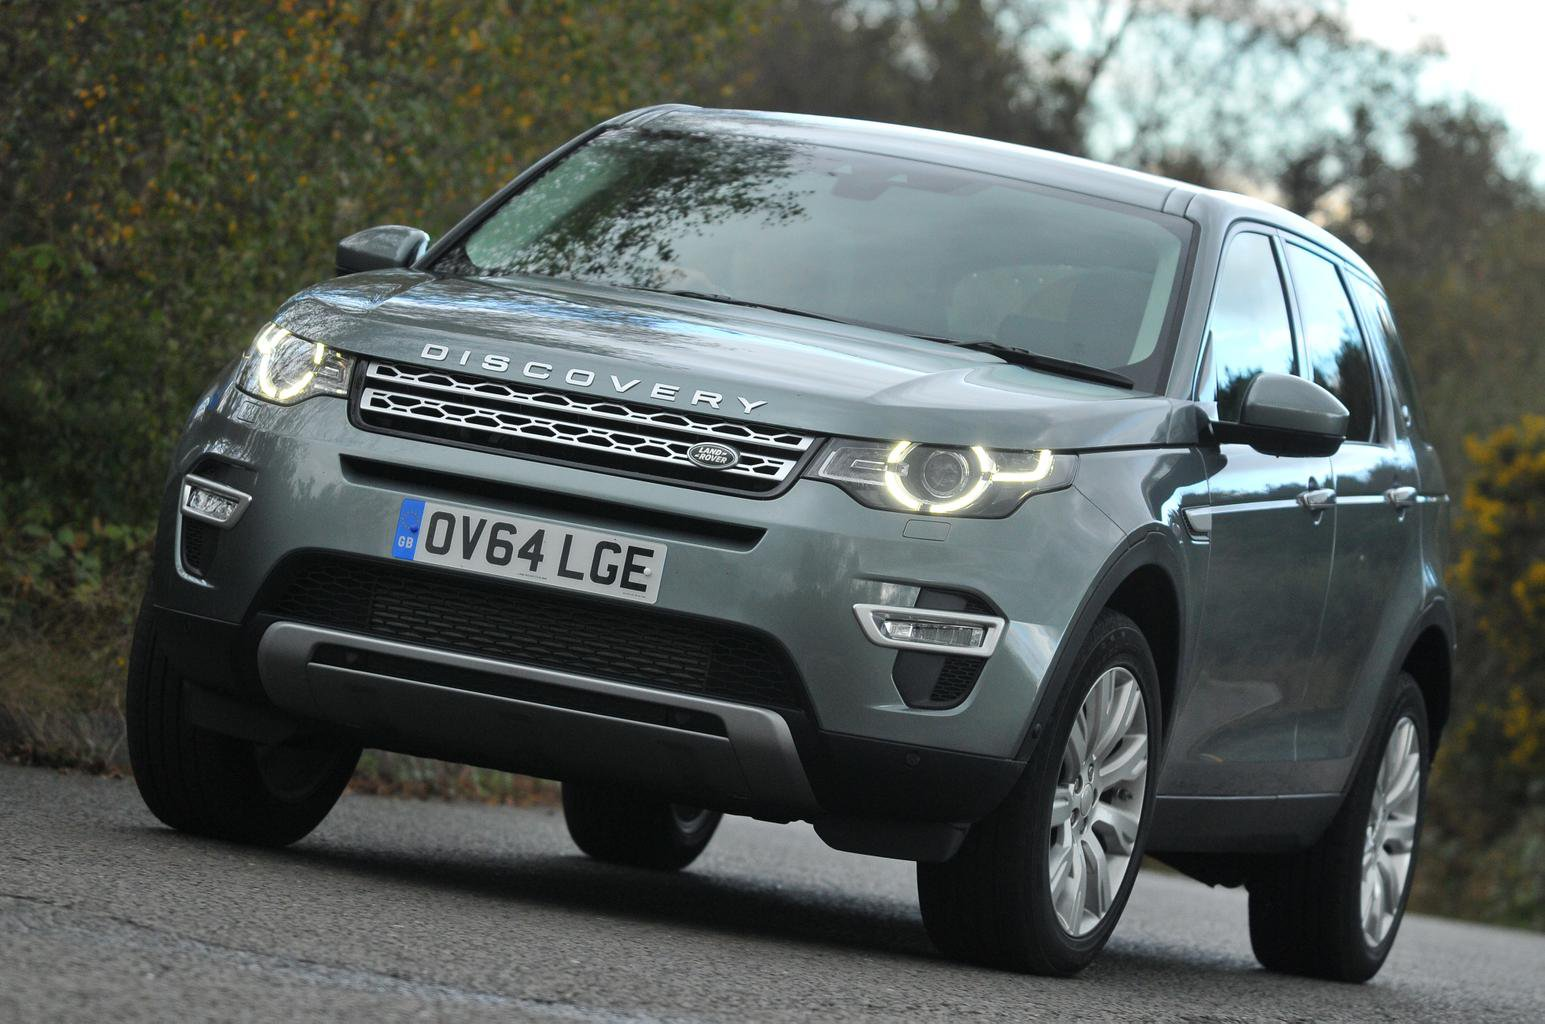 10 reasons to buy a Land Rover Discovery Sport